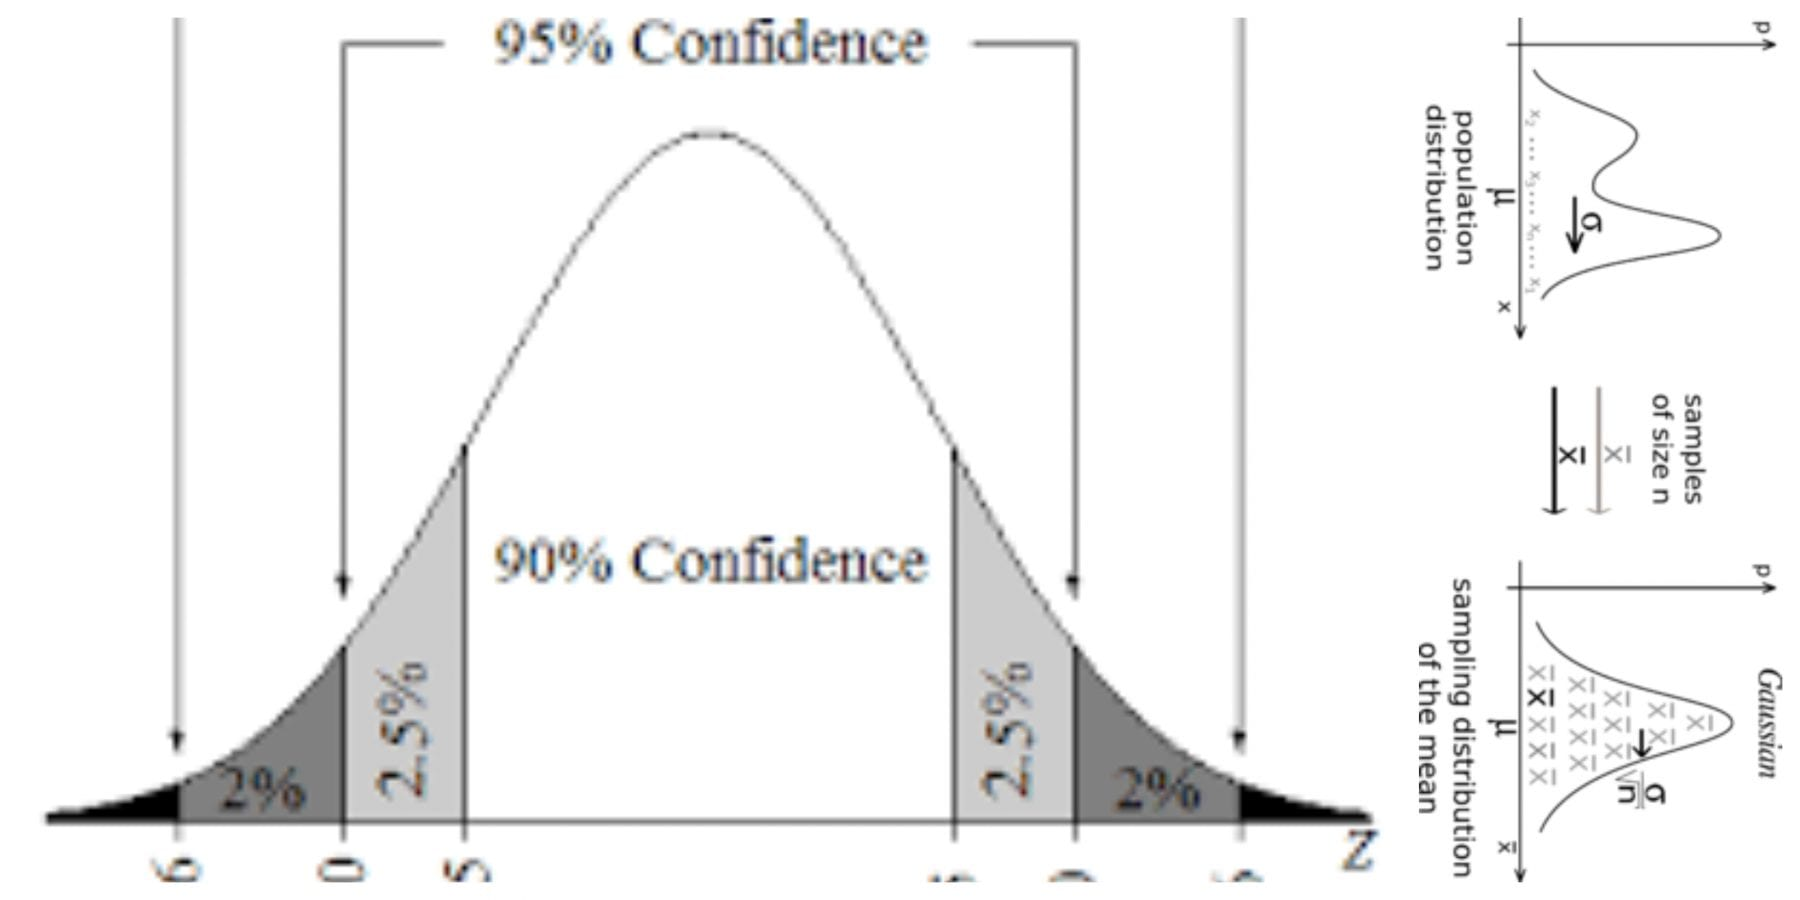 finding confidence interval - graph